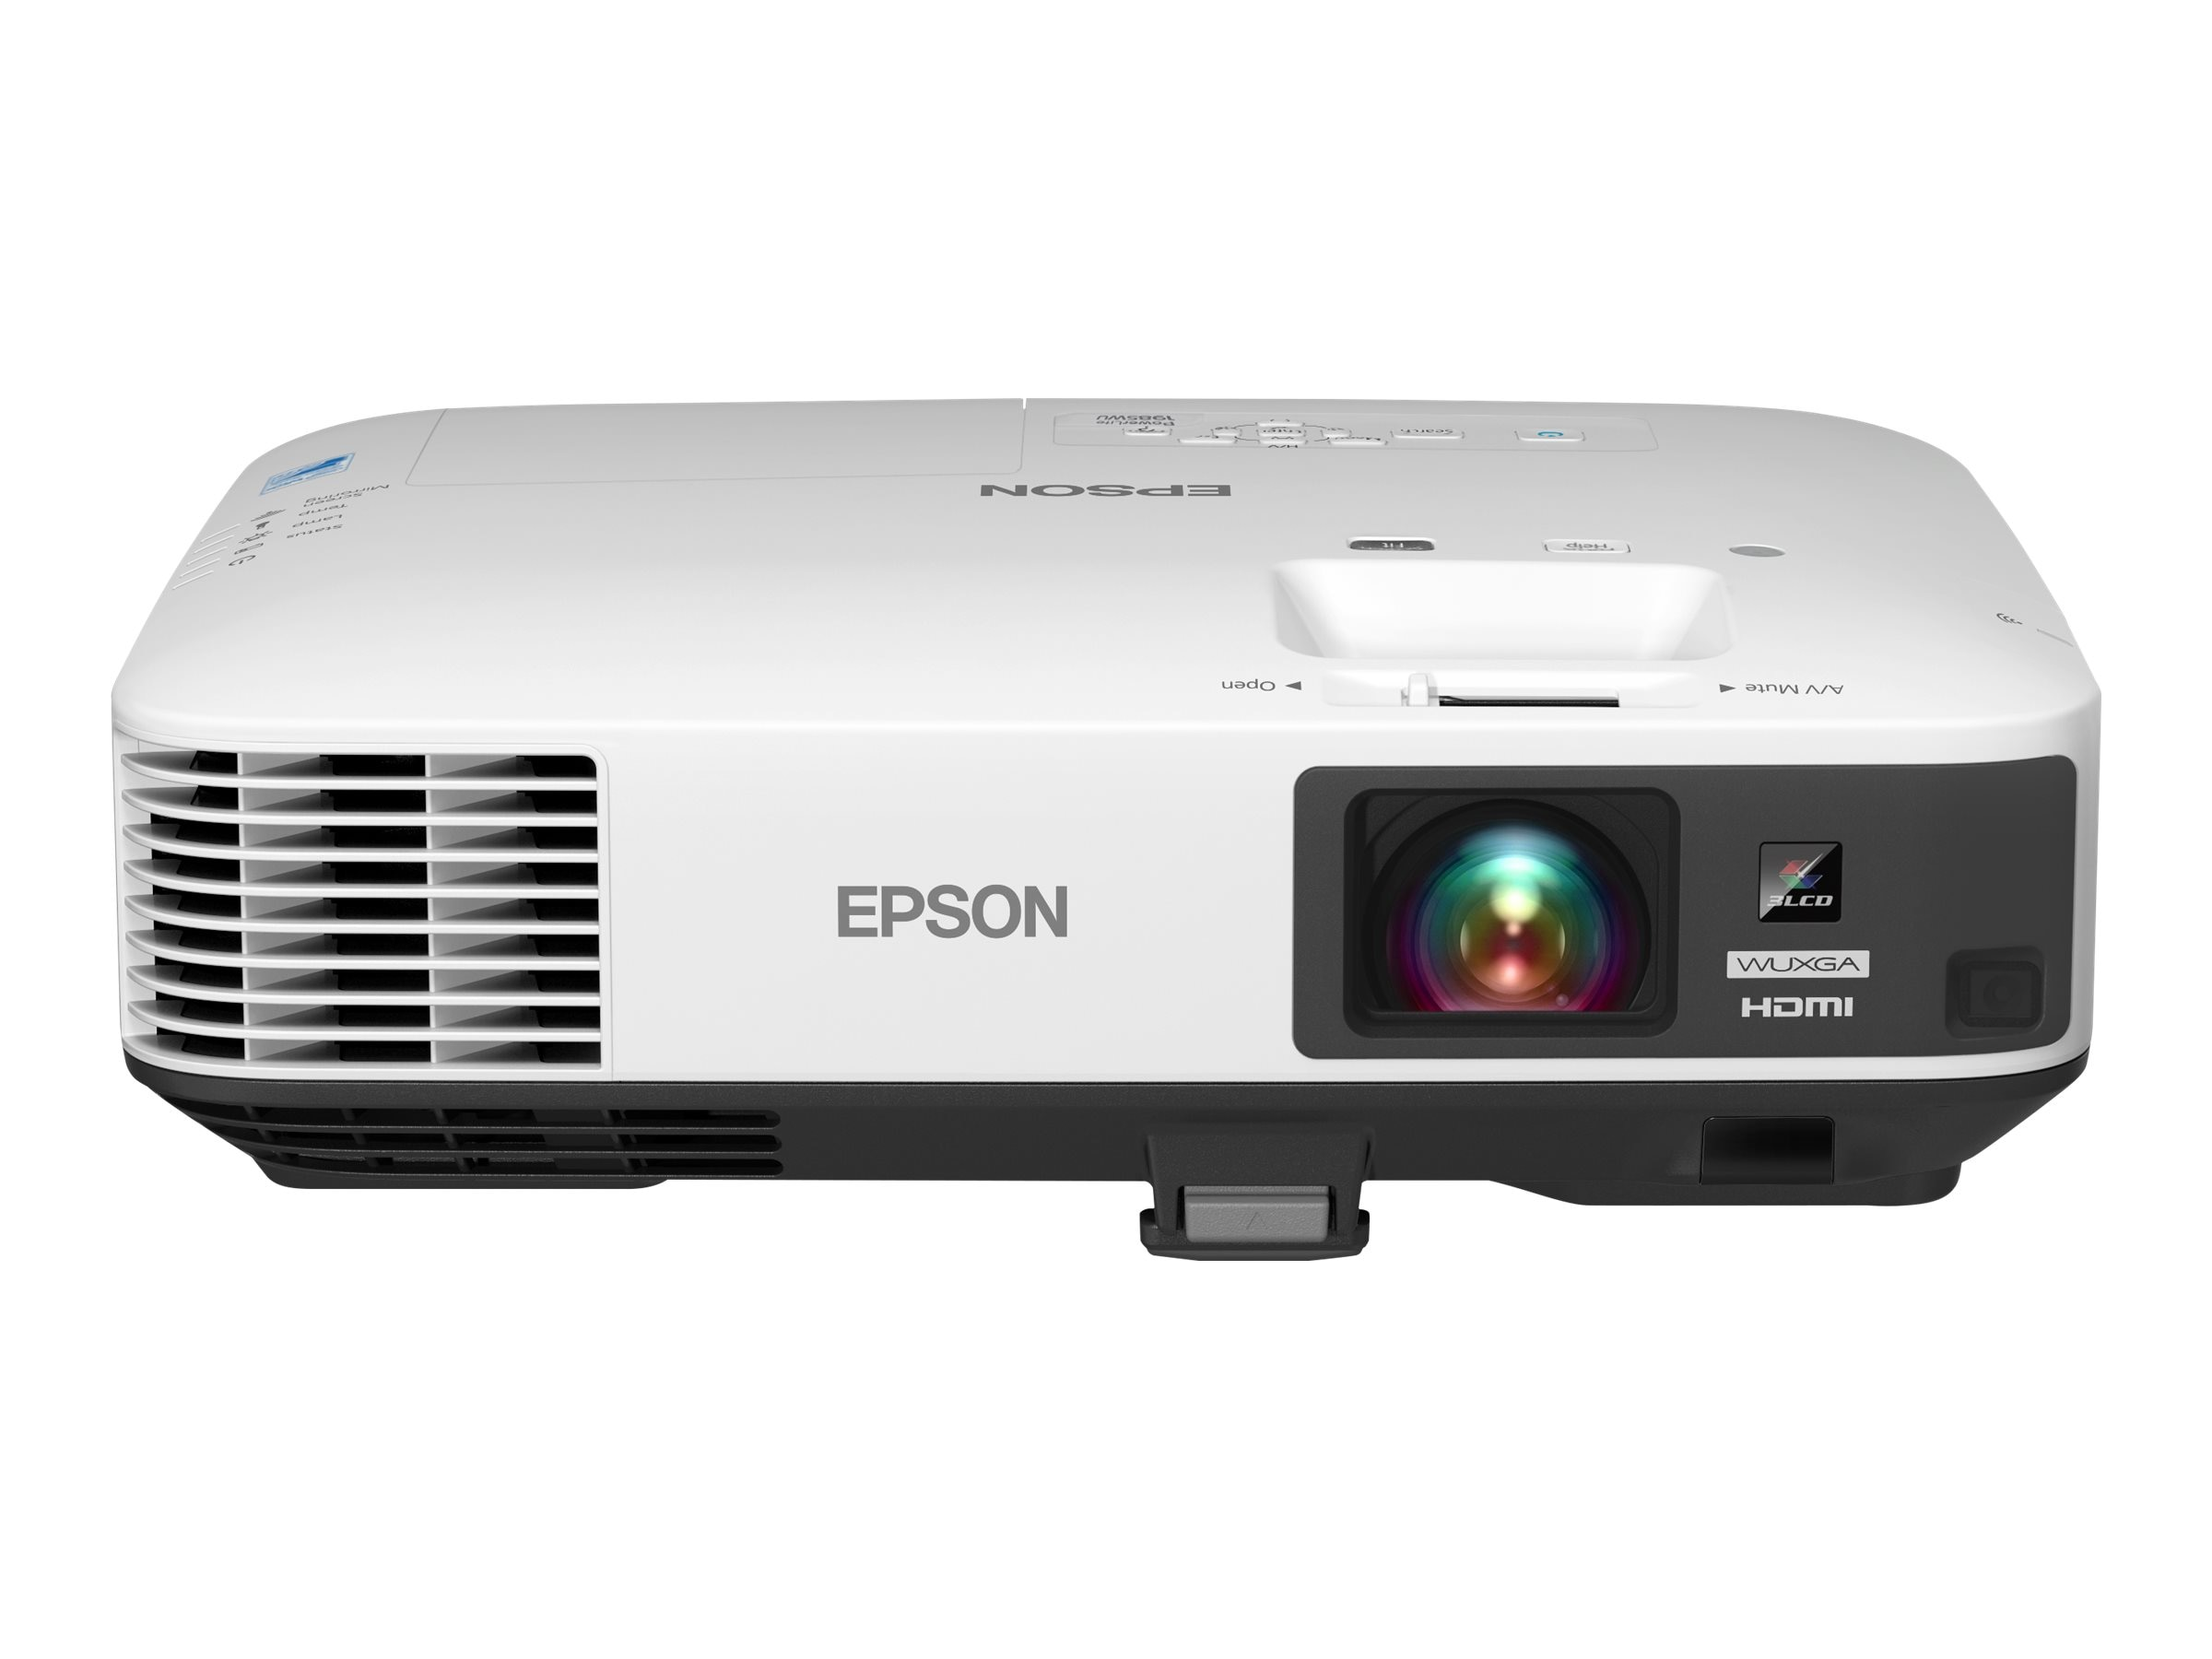 Epson PowerLite 1985WU WUXGA Wireless 3LCD Projector, 4800 Lumens, White, V11H619020